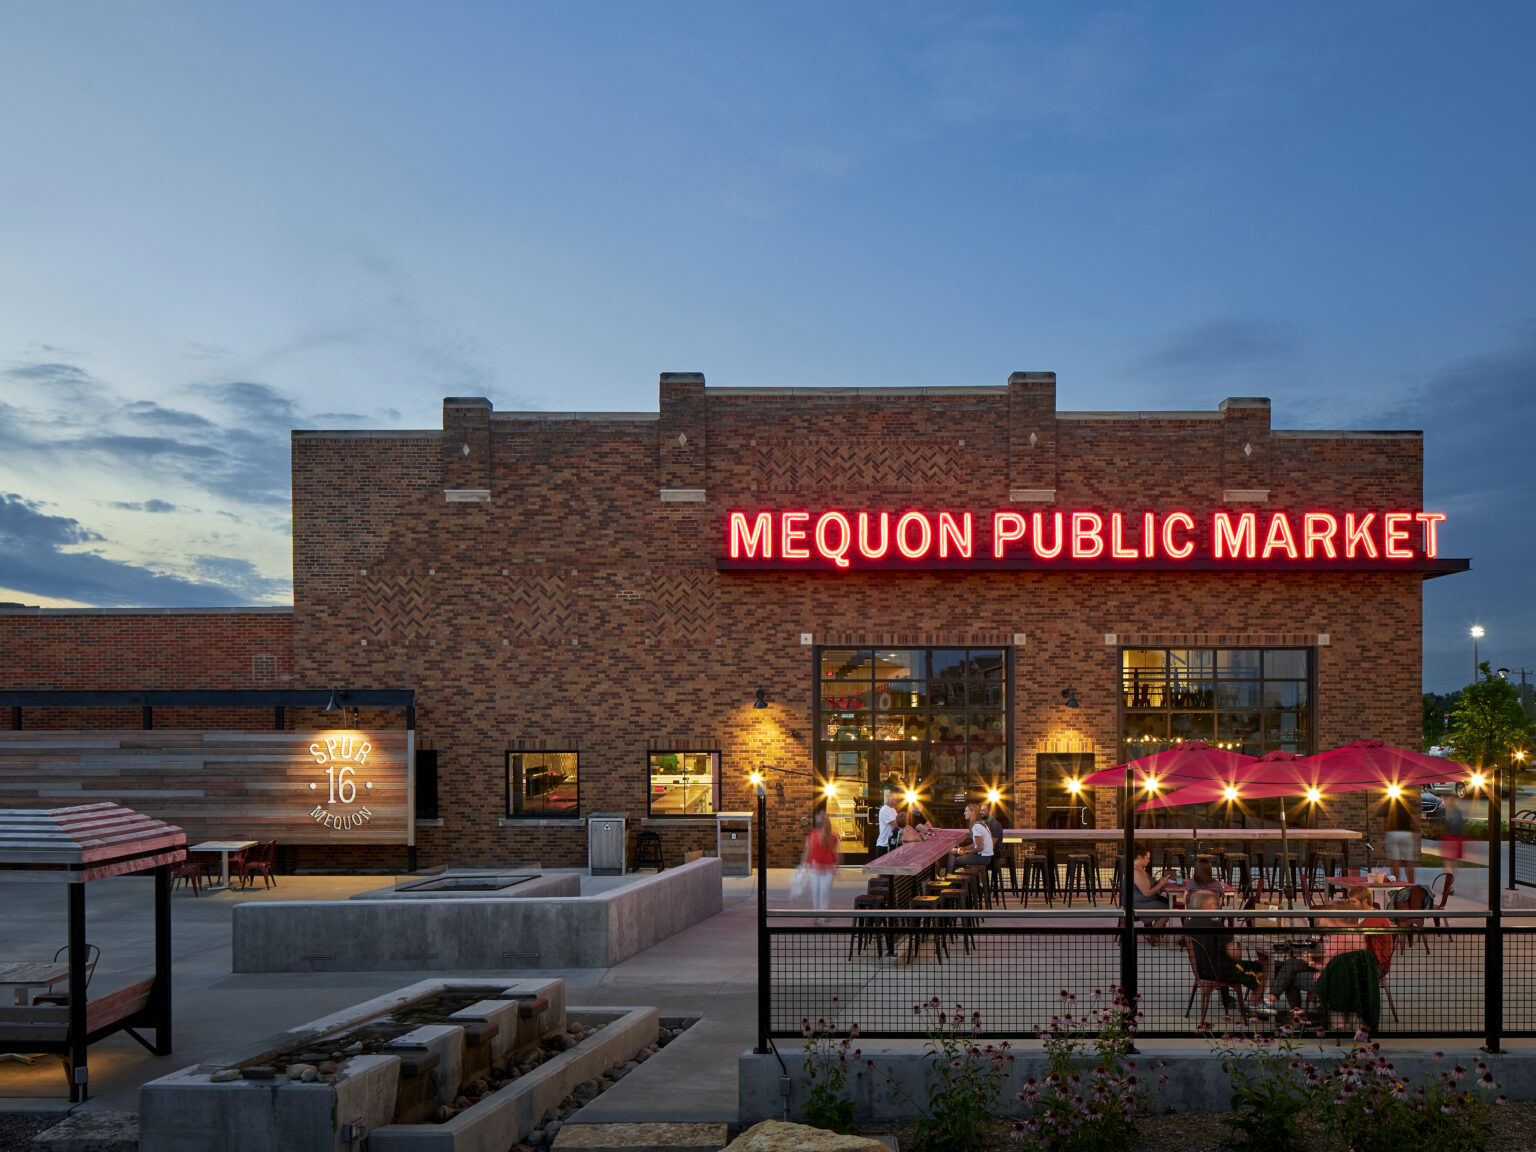 In the News: Mequon Public Market